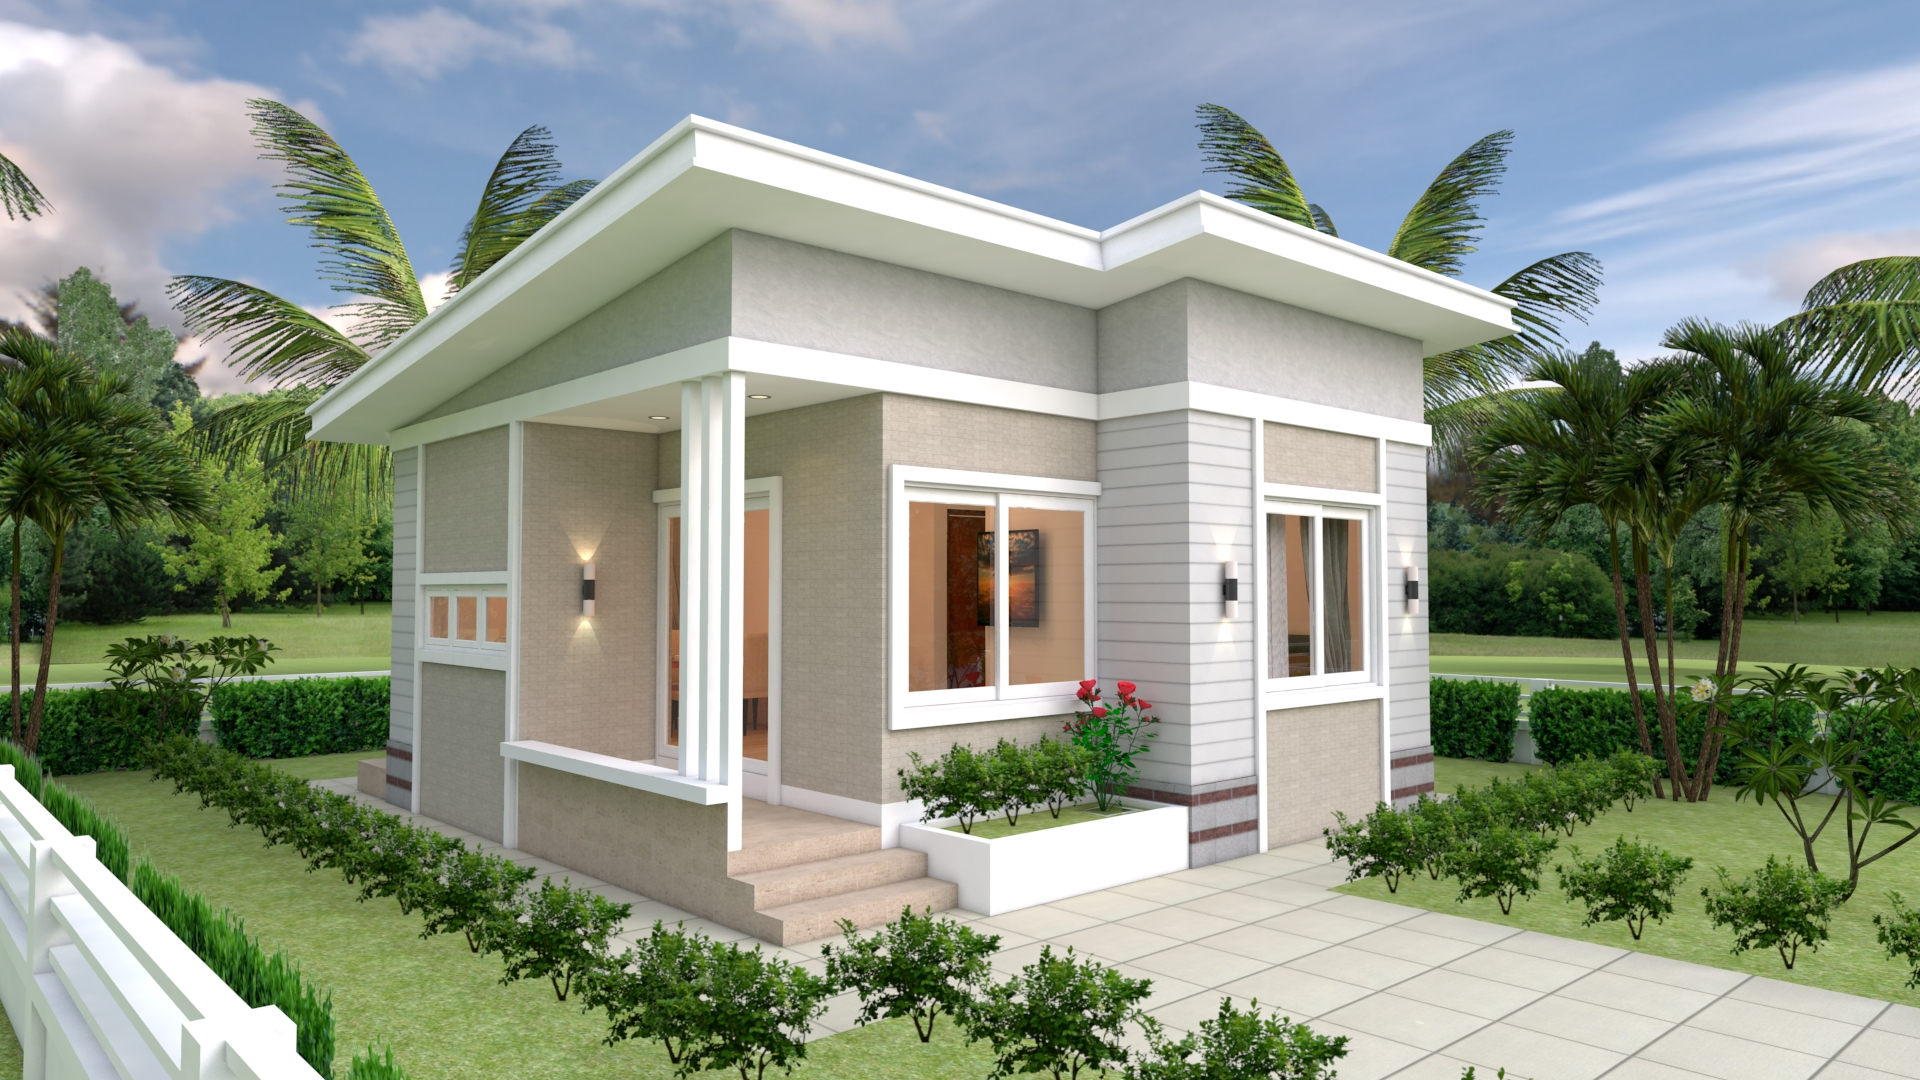 Small Luxury Homes 7x7 Meter 24x24 Feet 2 Beds 1